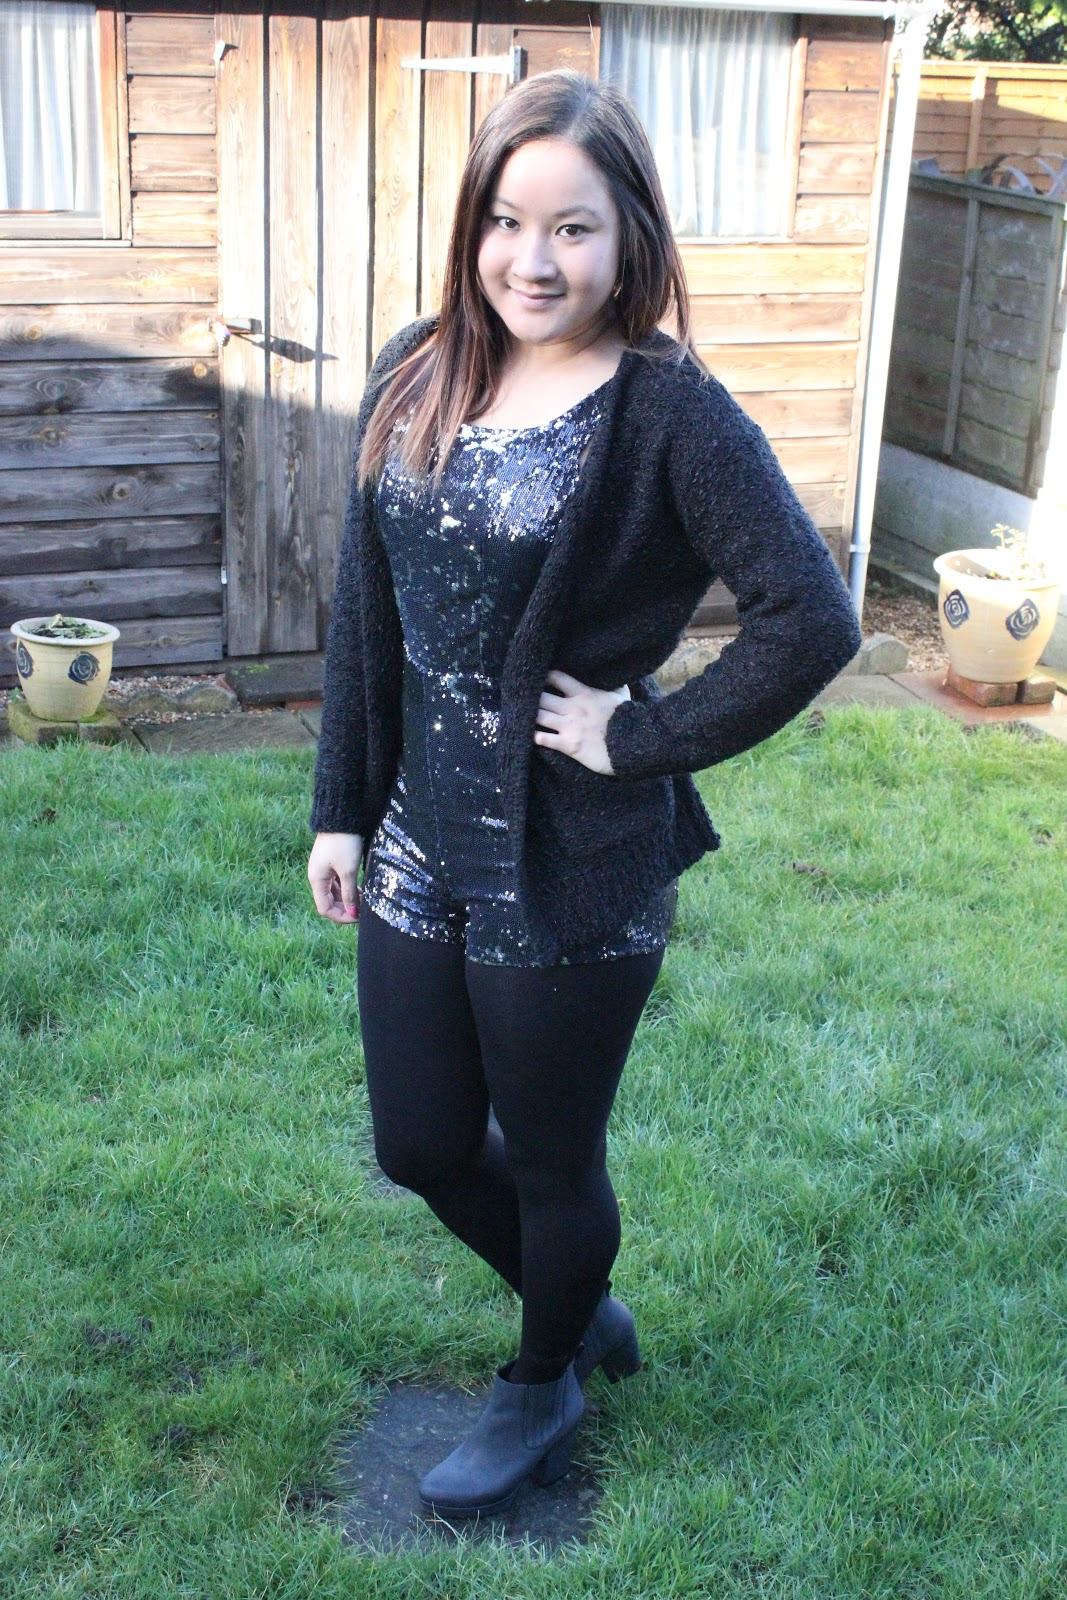 825e47bb537 OUTFIT - Sequin Playsuit - Raining Cake